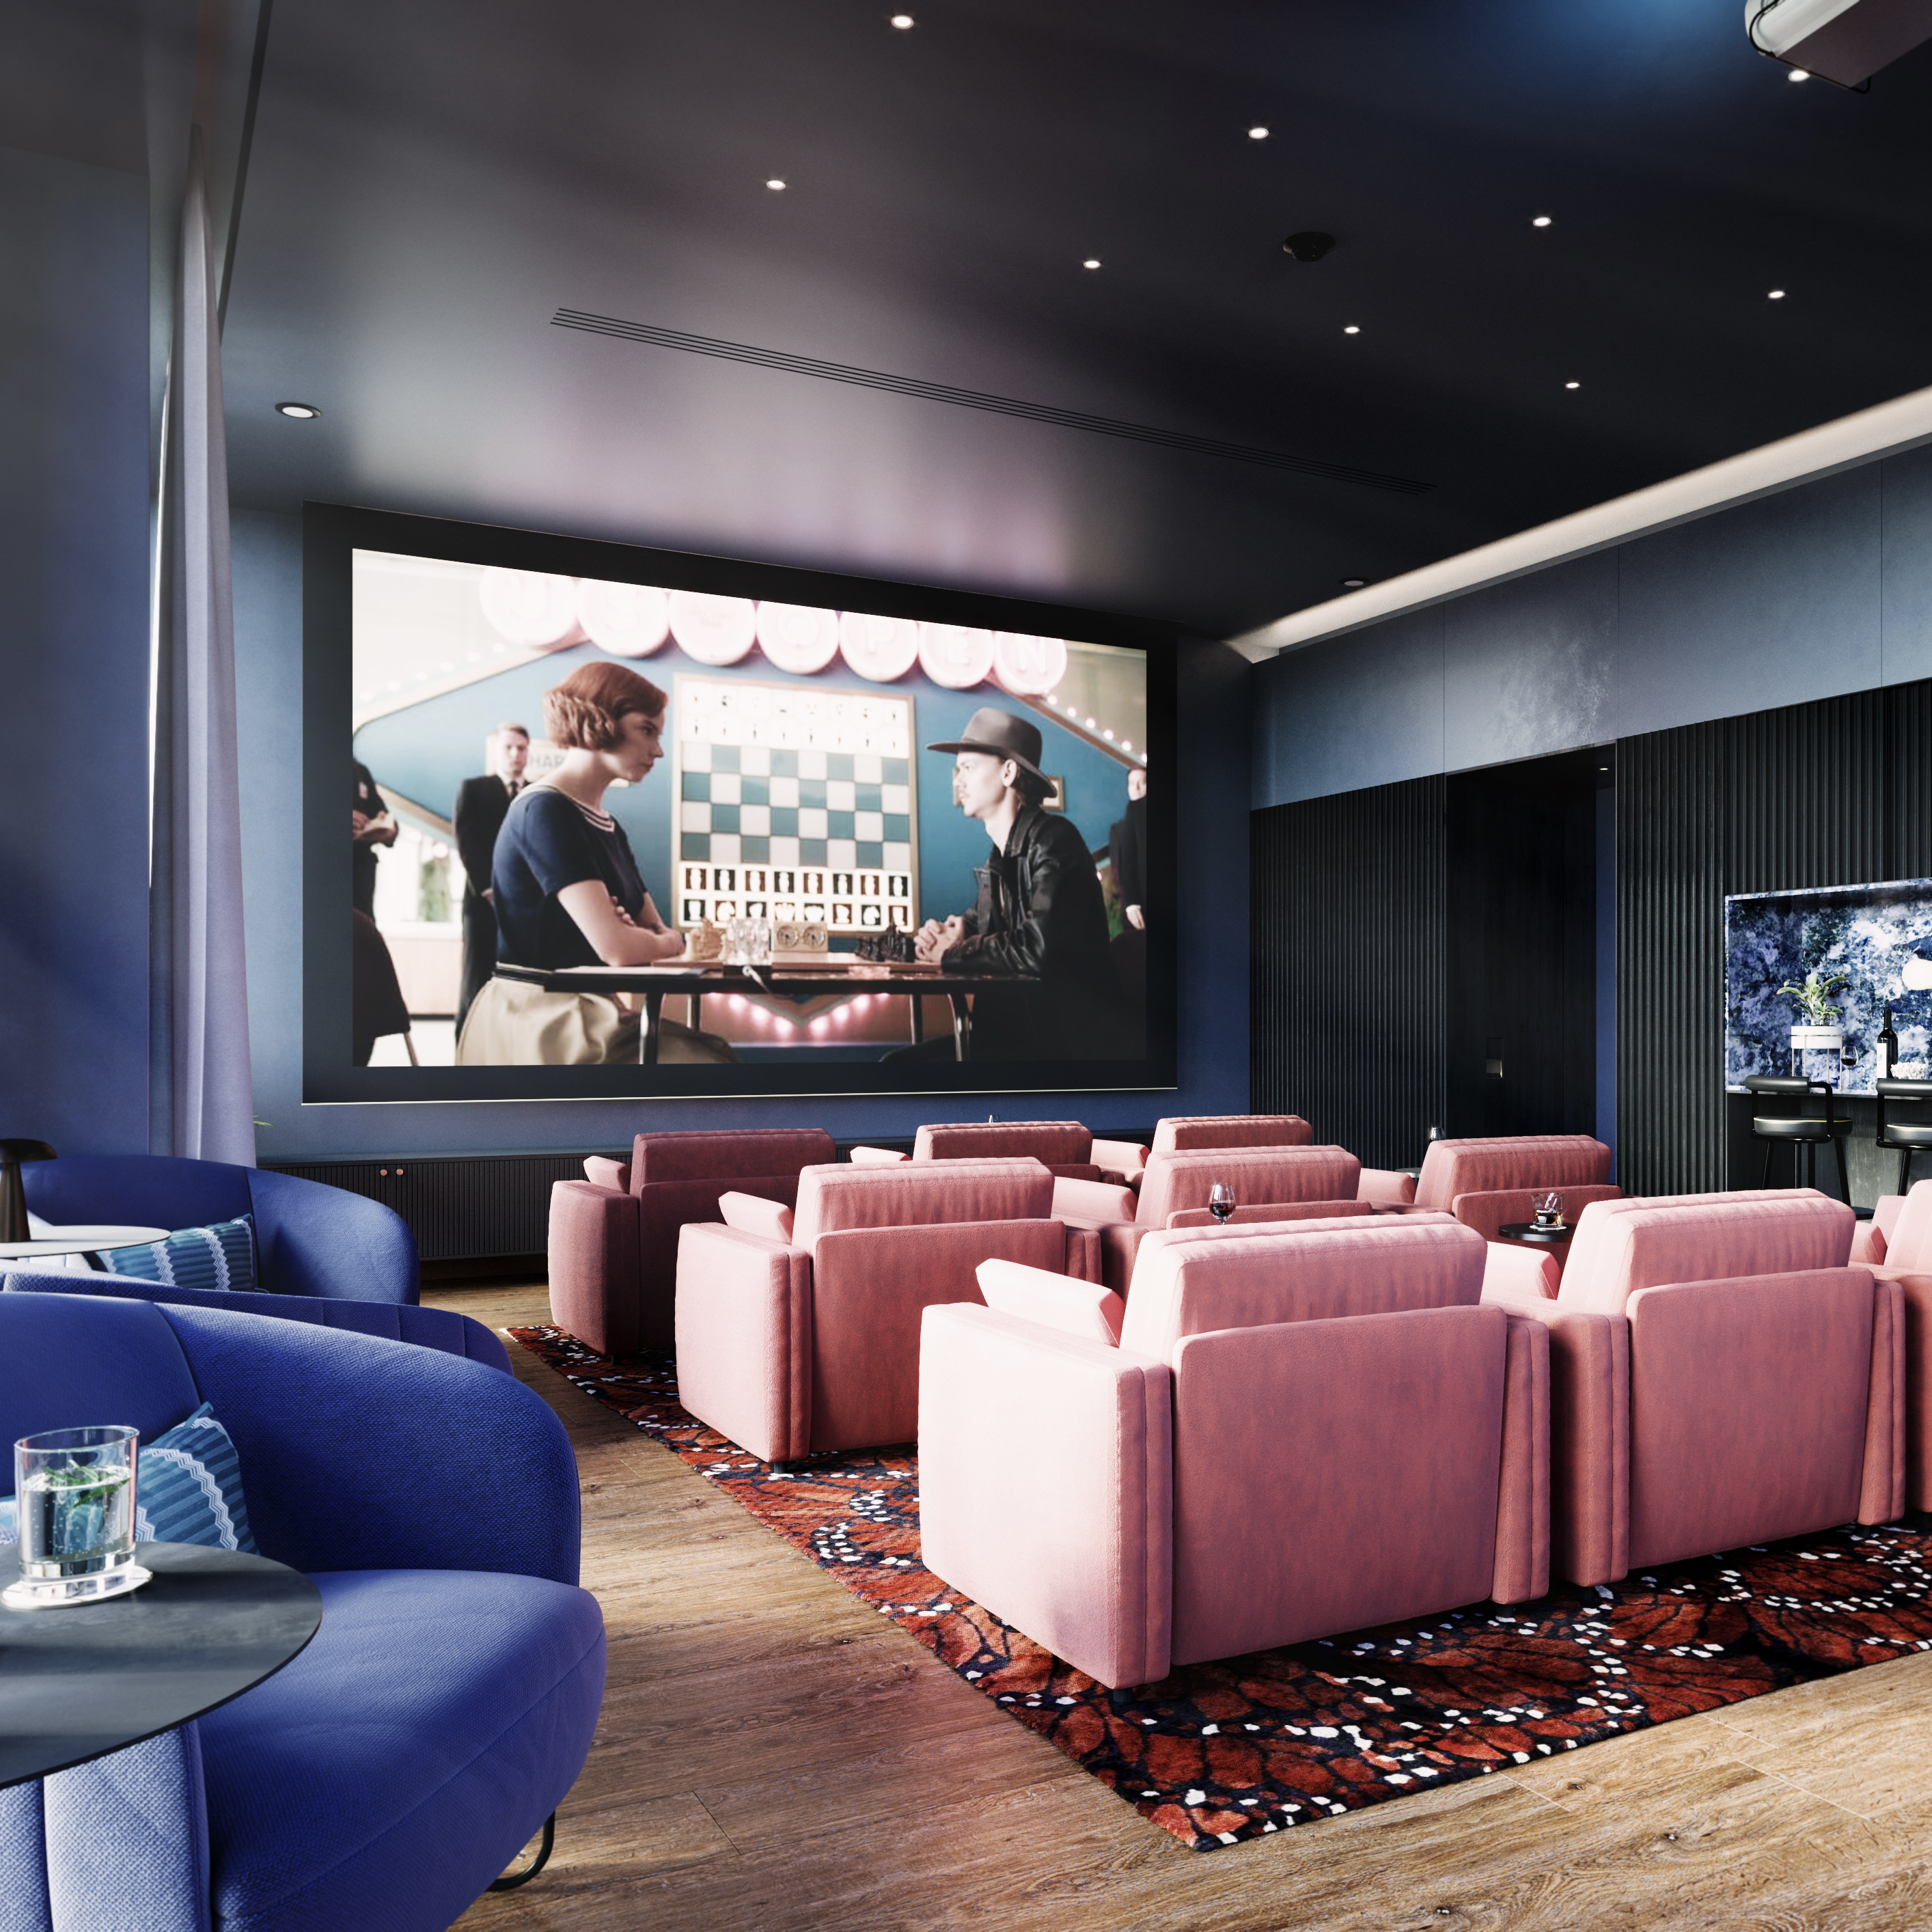 Cinema room with big screen and seating